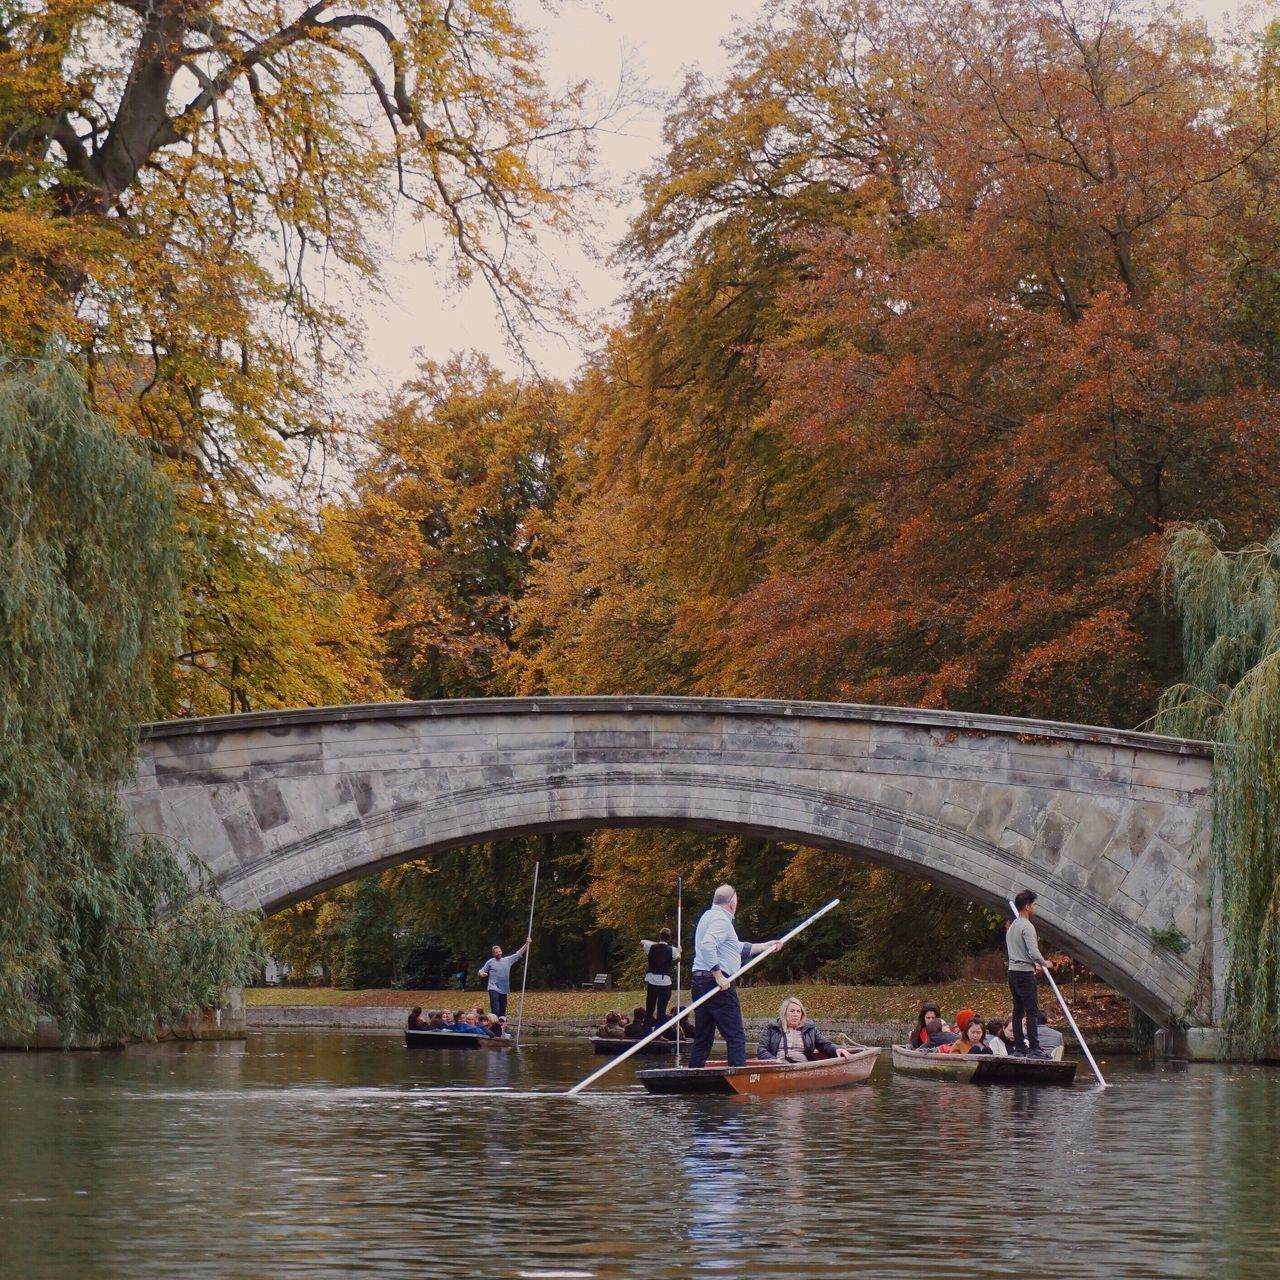 Cambridge Riverside Boating Beauty In Nature Autumn Colors Trees Boats And Water Town Cambridge University Bridge - Man Made Structure Bridge Vintage Style Lifestyle Lifeisbeautiful Landscape_Collection